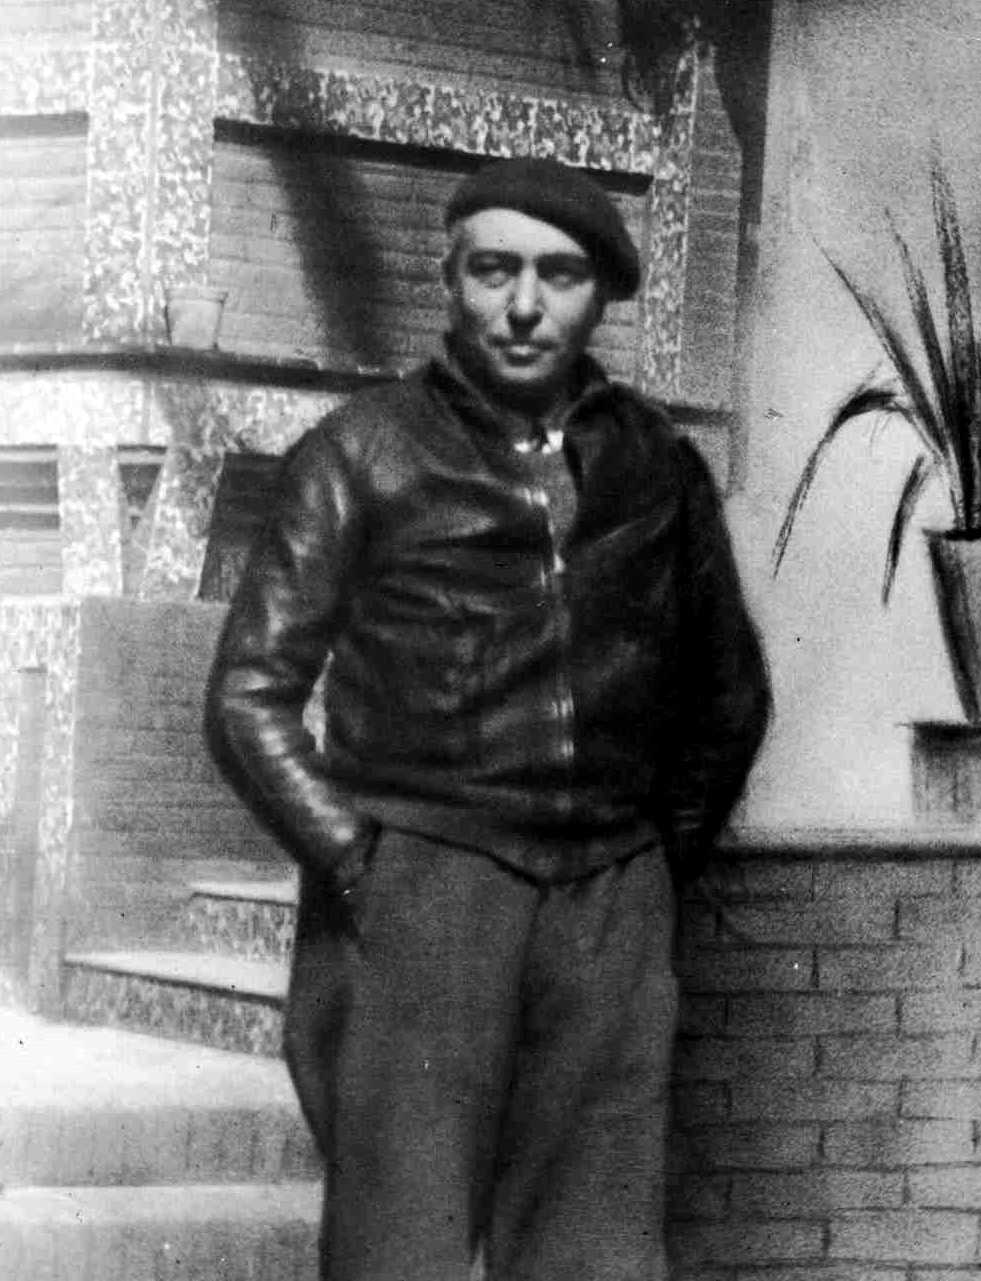 Libero Battistelli (1937)